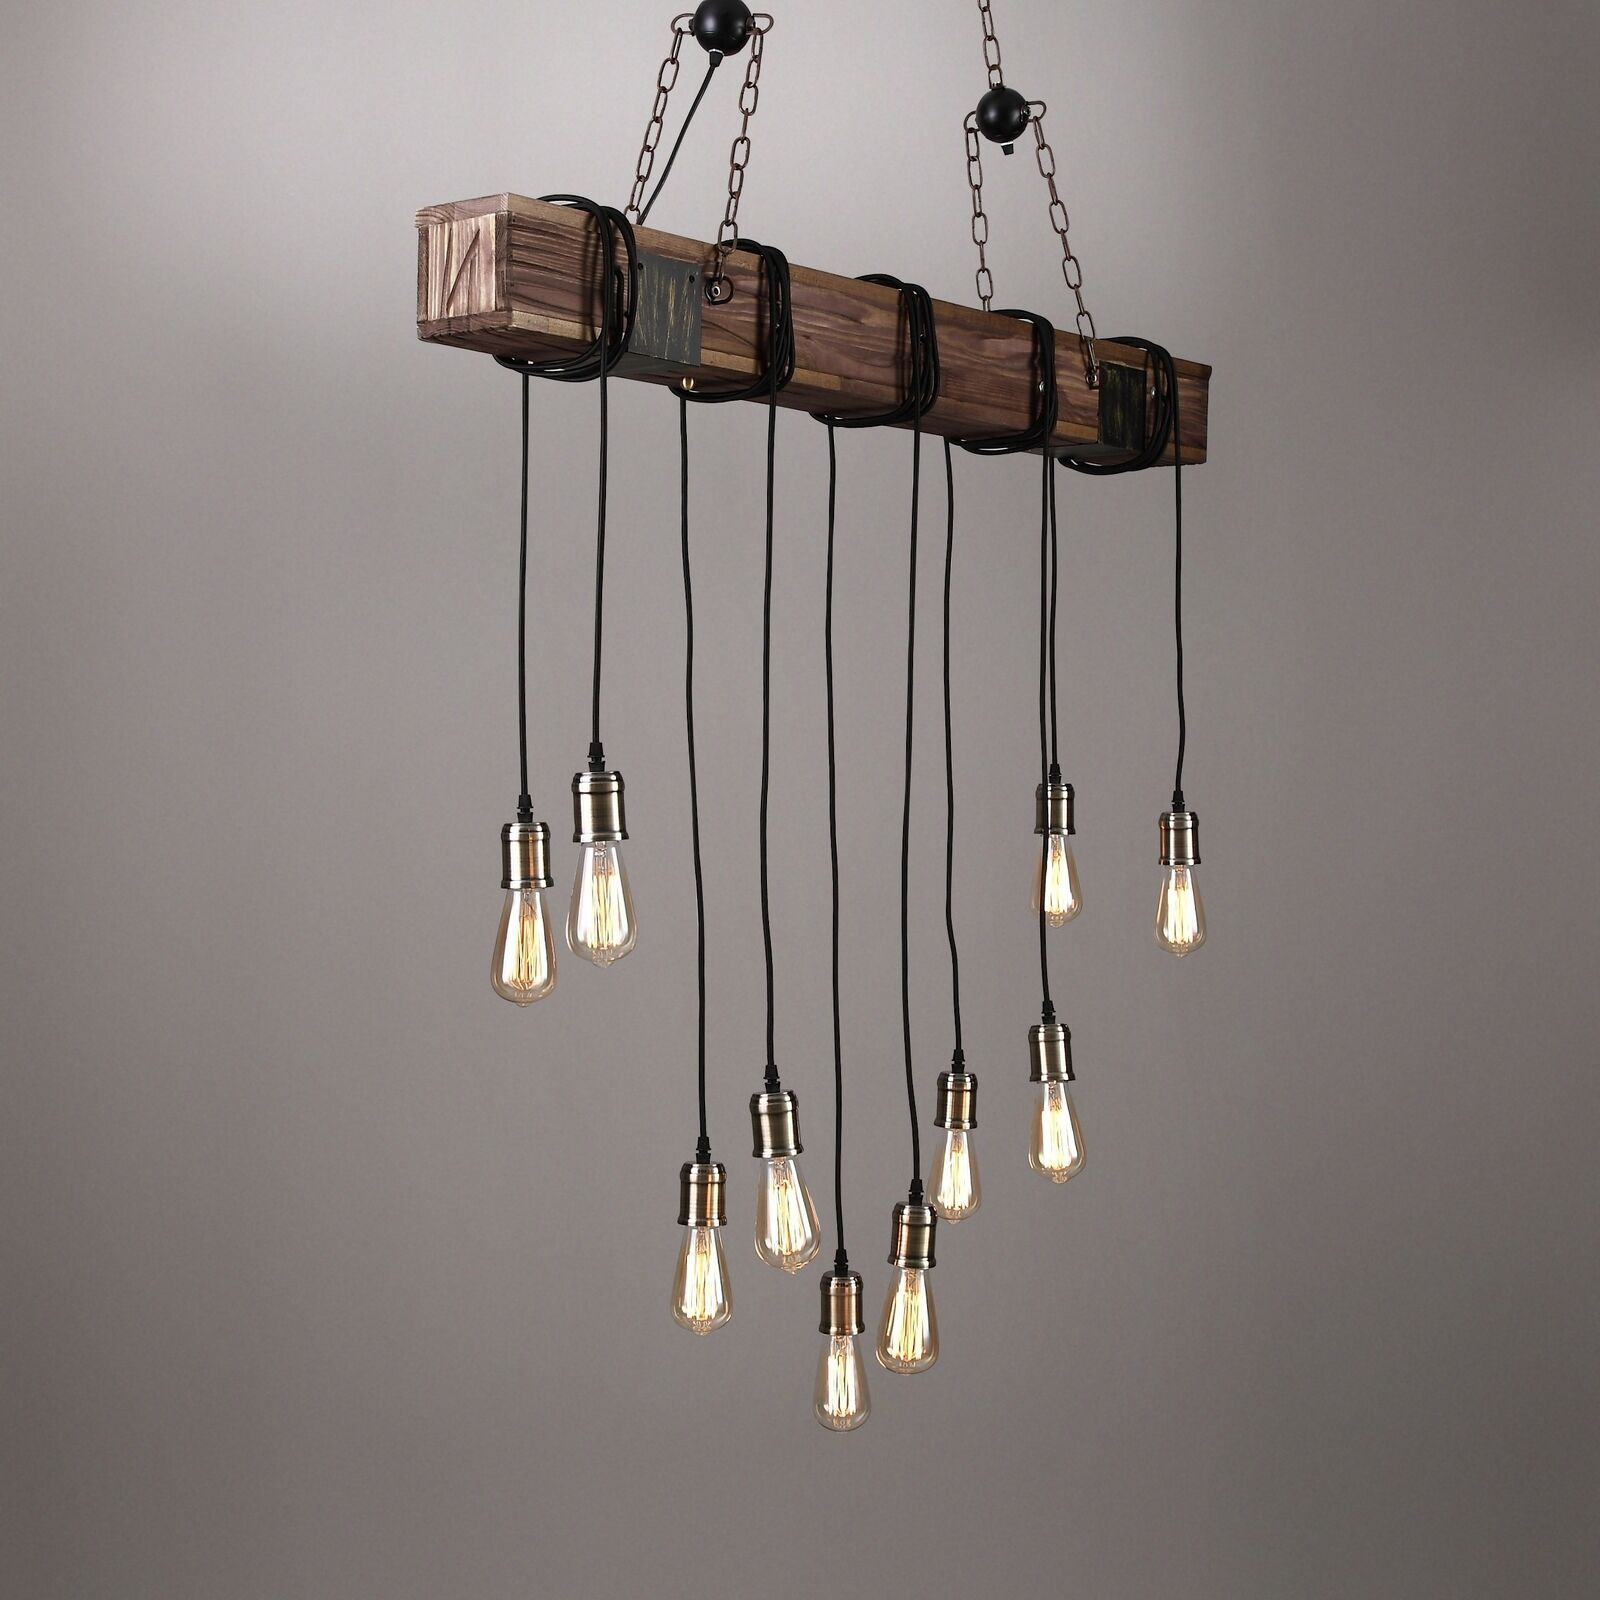 Farmhouse Wood Beam Island Hanging Pendant Light Chandelier with 10 Edison Bulb